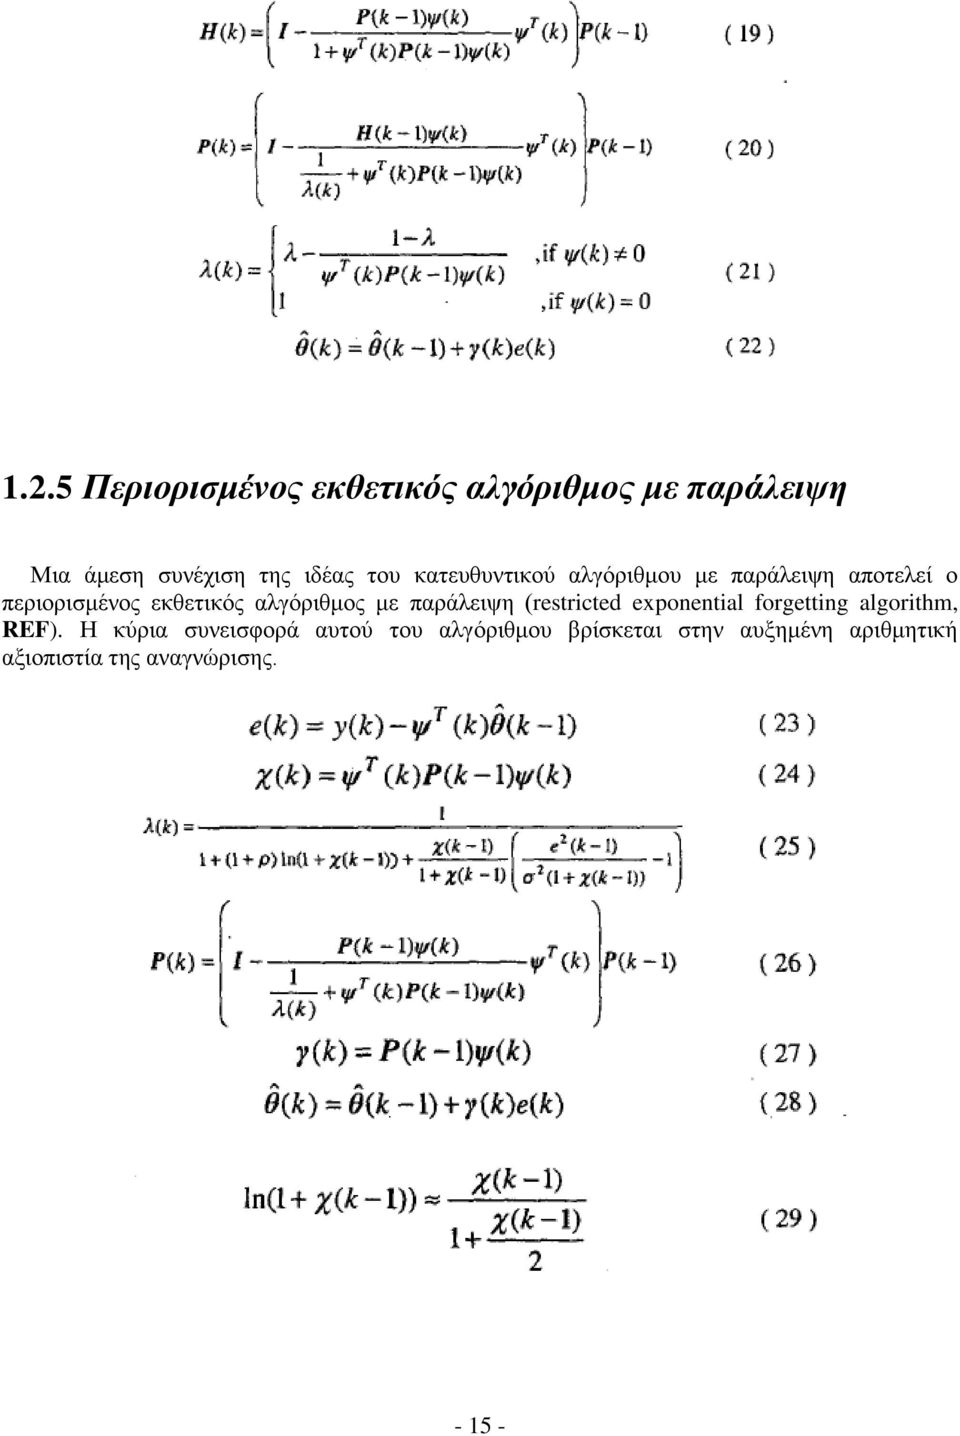 παράλειψη (restricted exponential forgetting algorithm, REF).